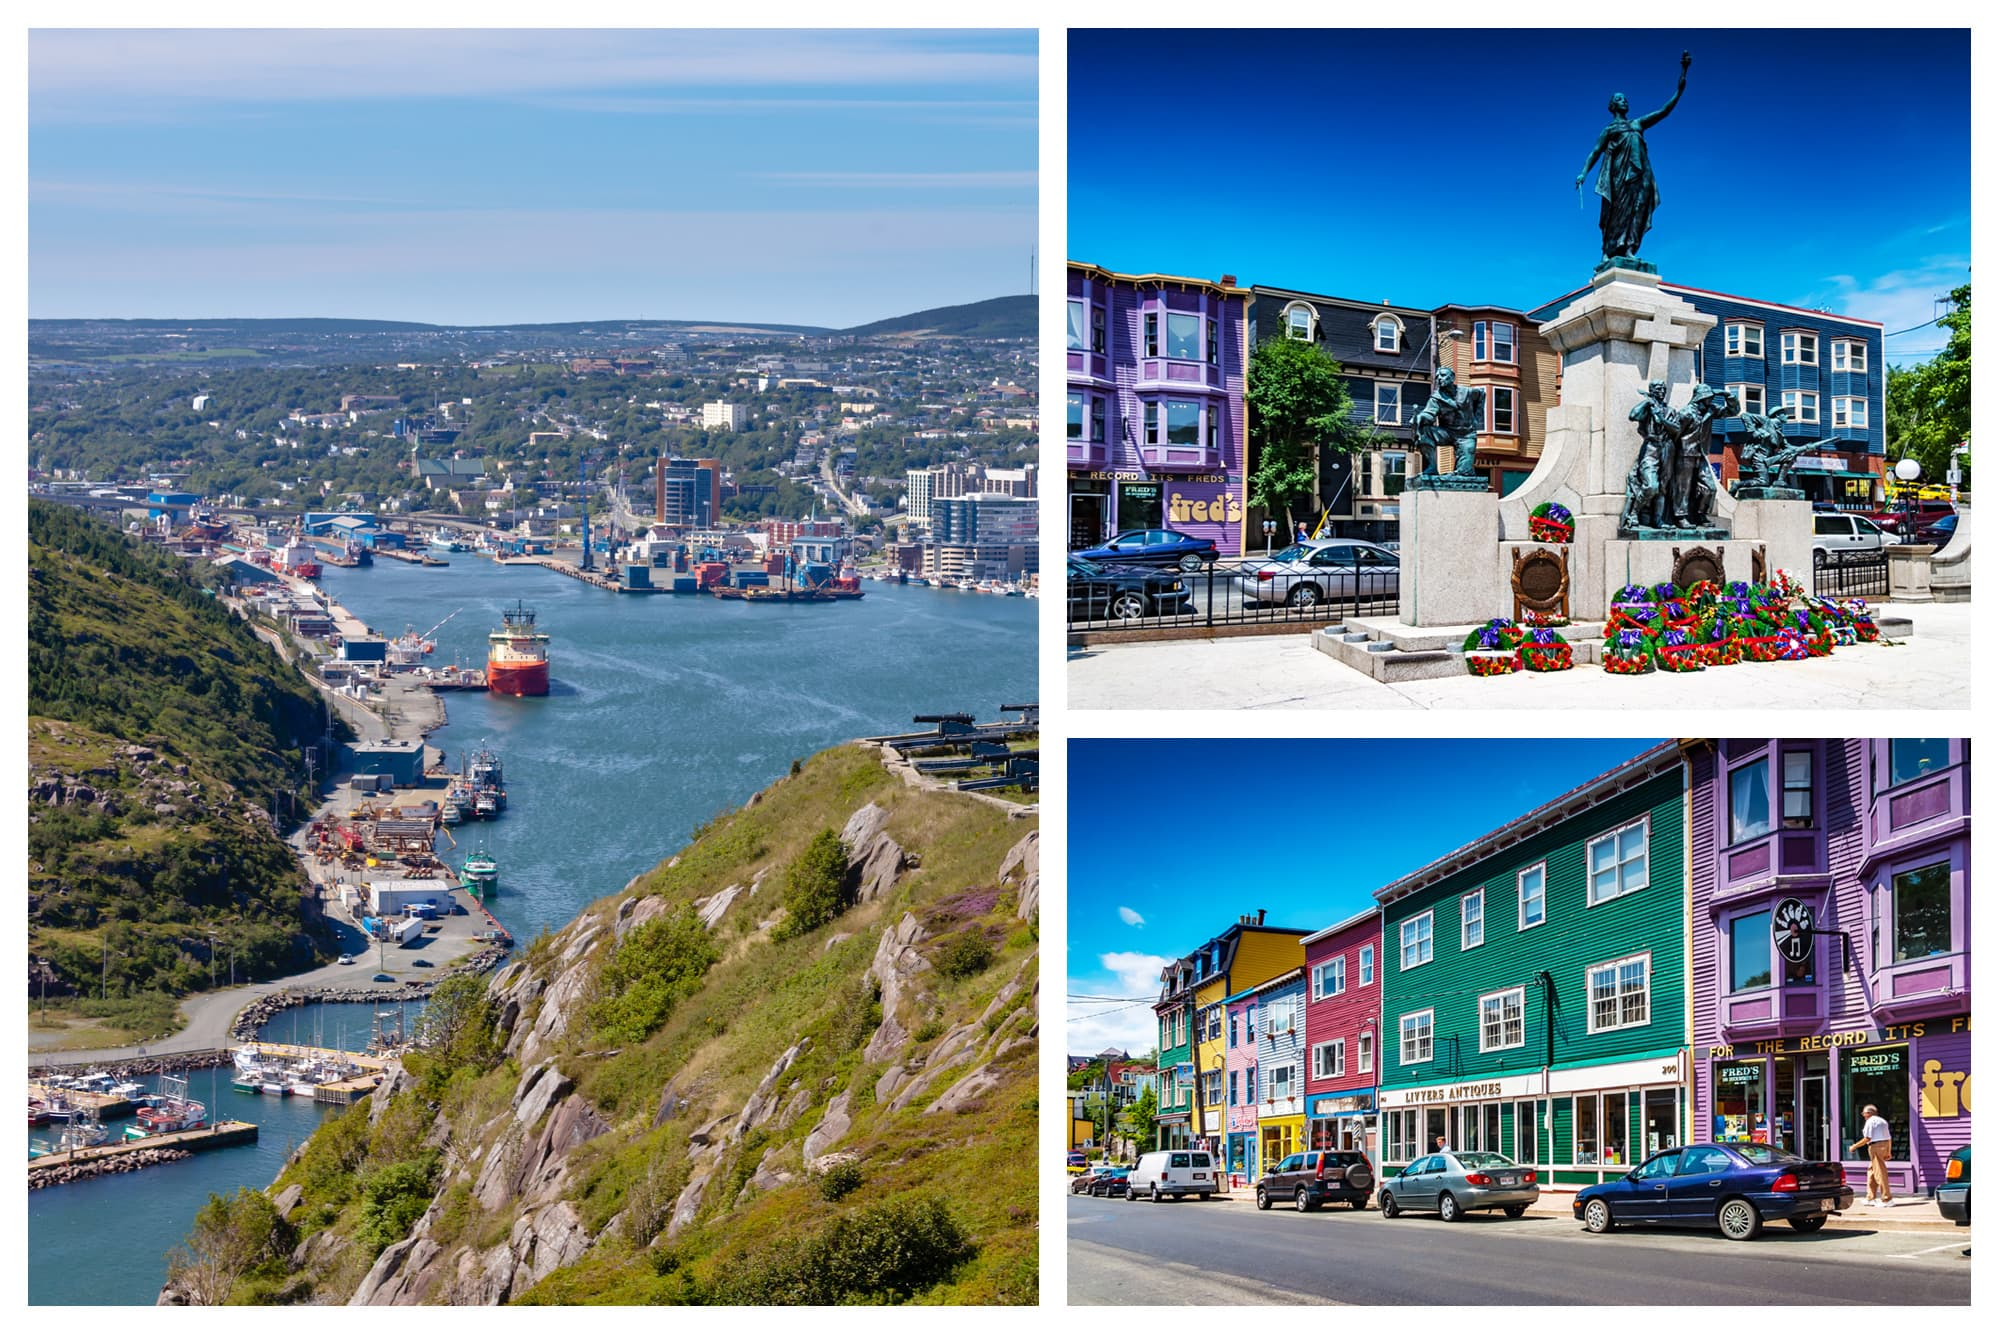 Views of the shoreline and downtown St. John's, Newfoundland and Labrador